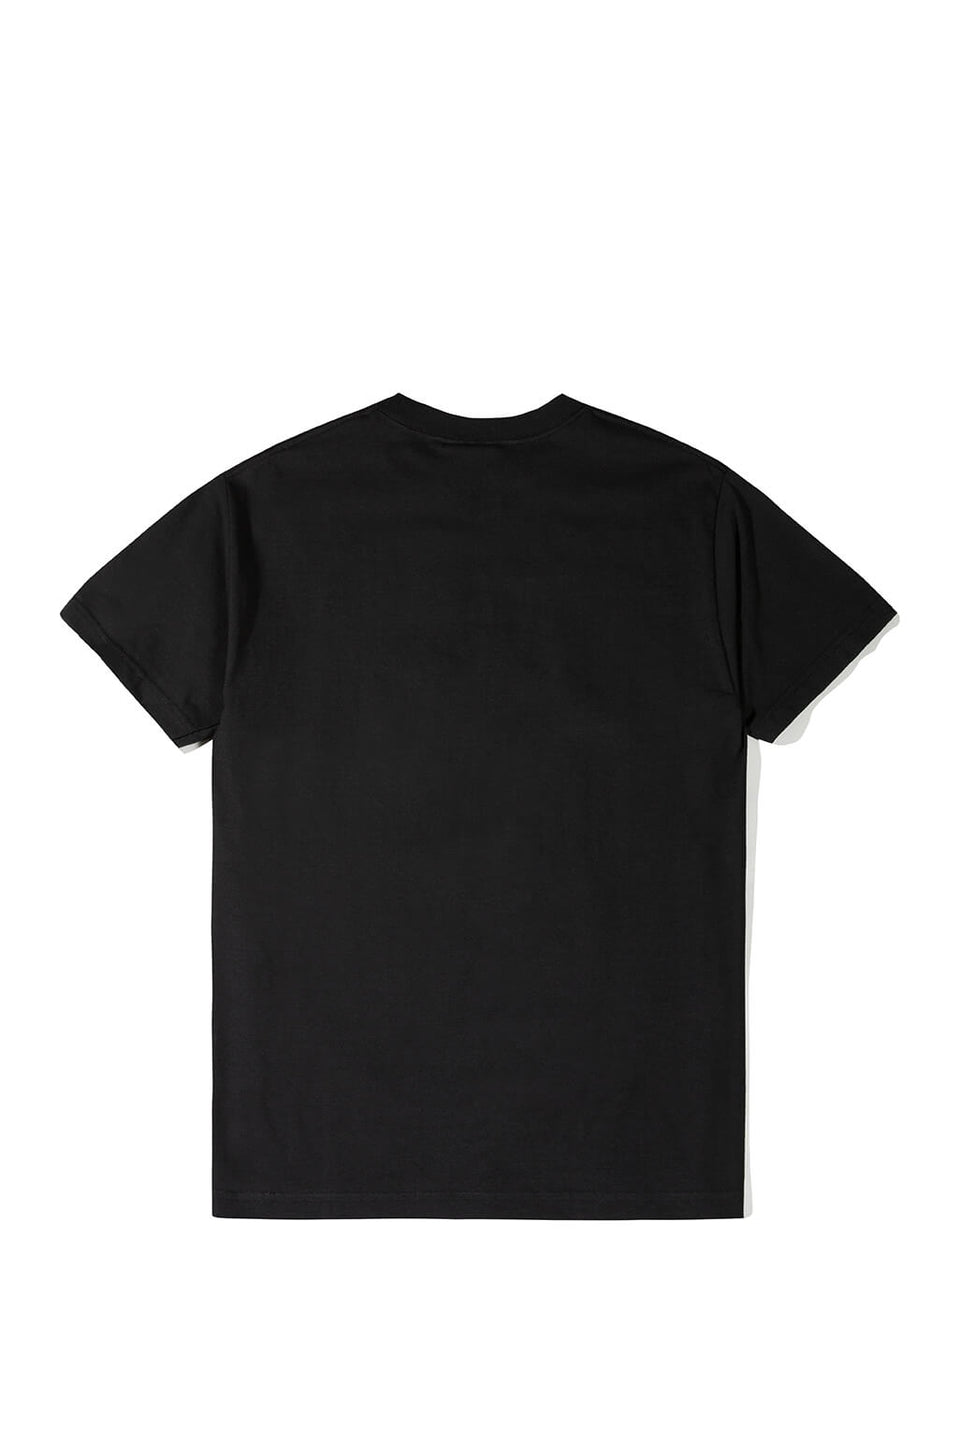 The Hundreds End T-Shirt Black